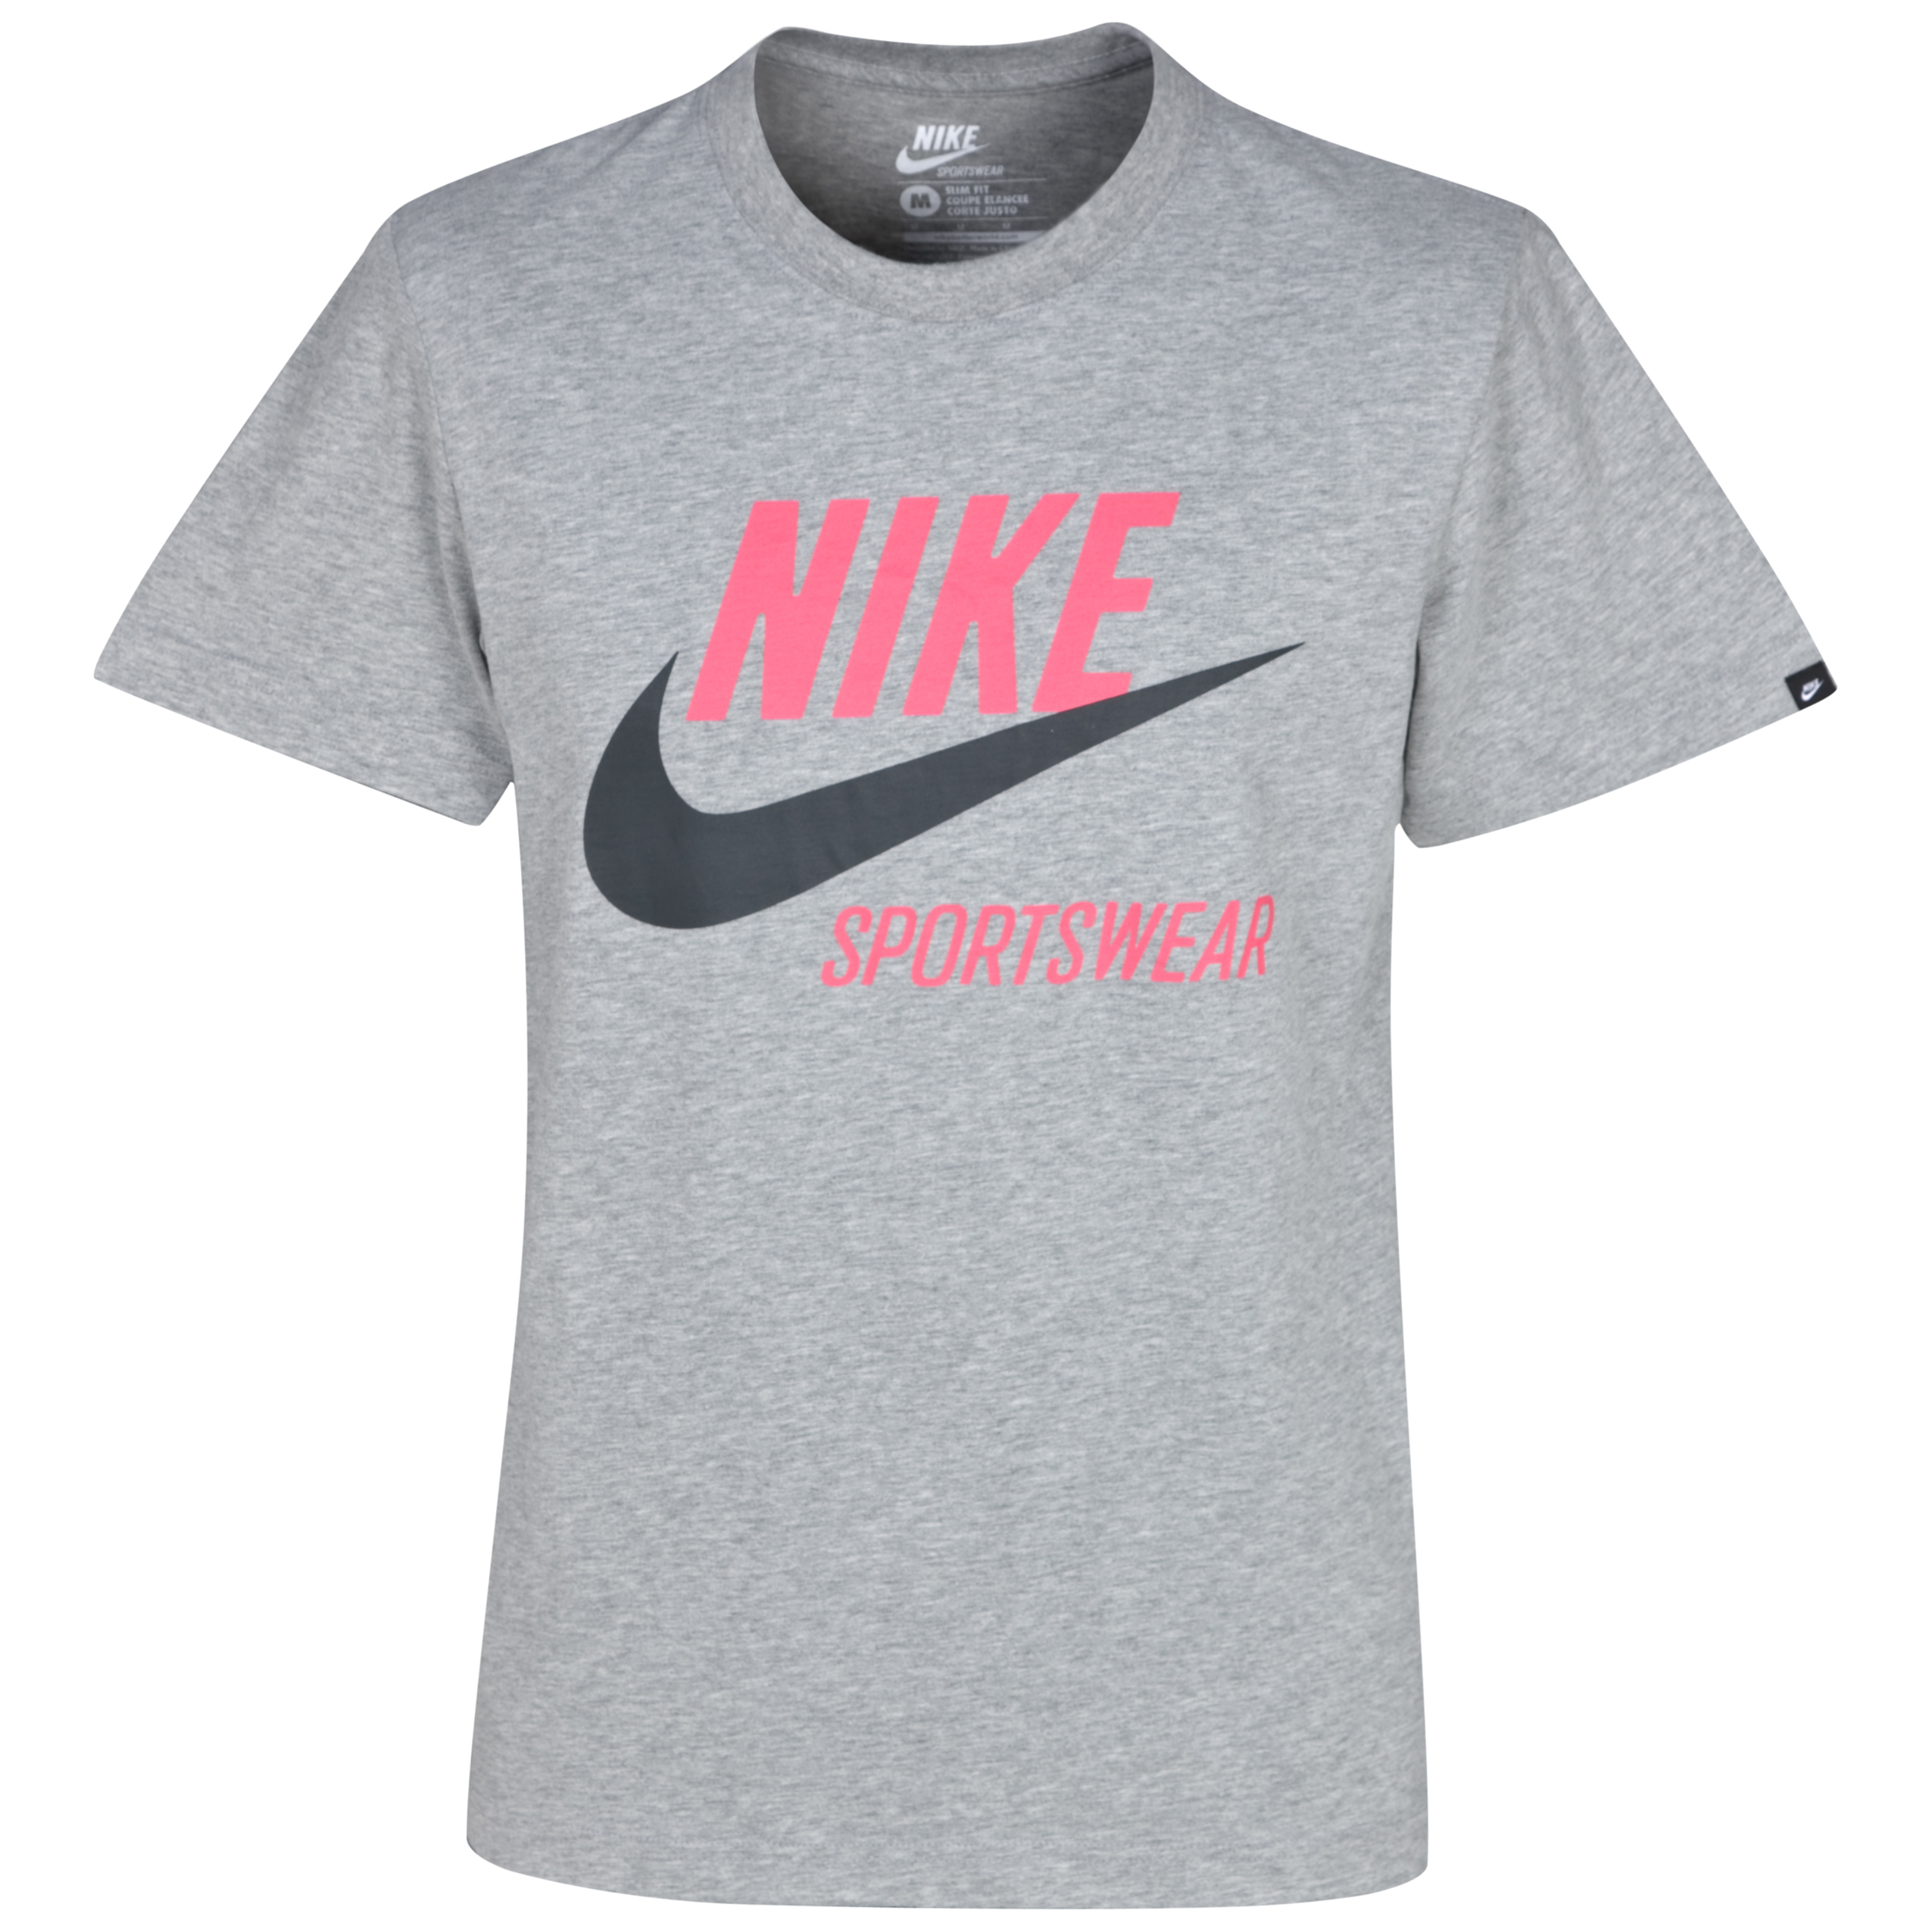 Nike Logo Tee - Grey/Red